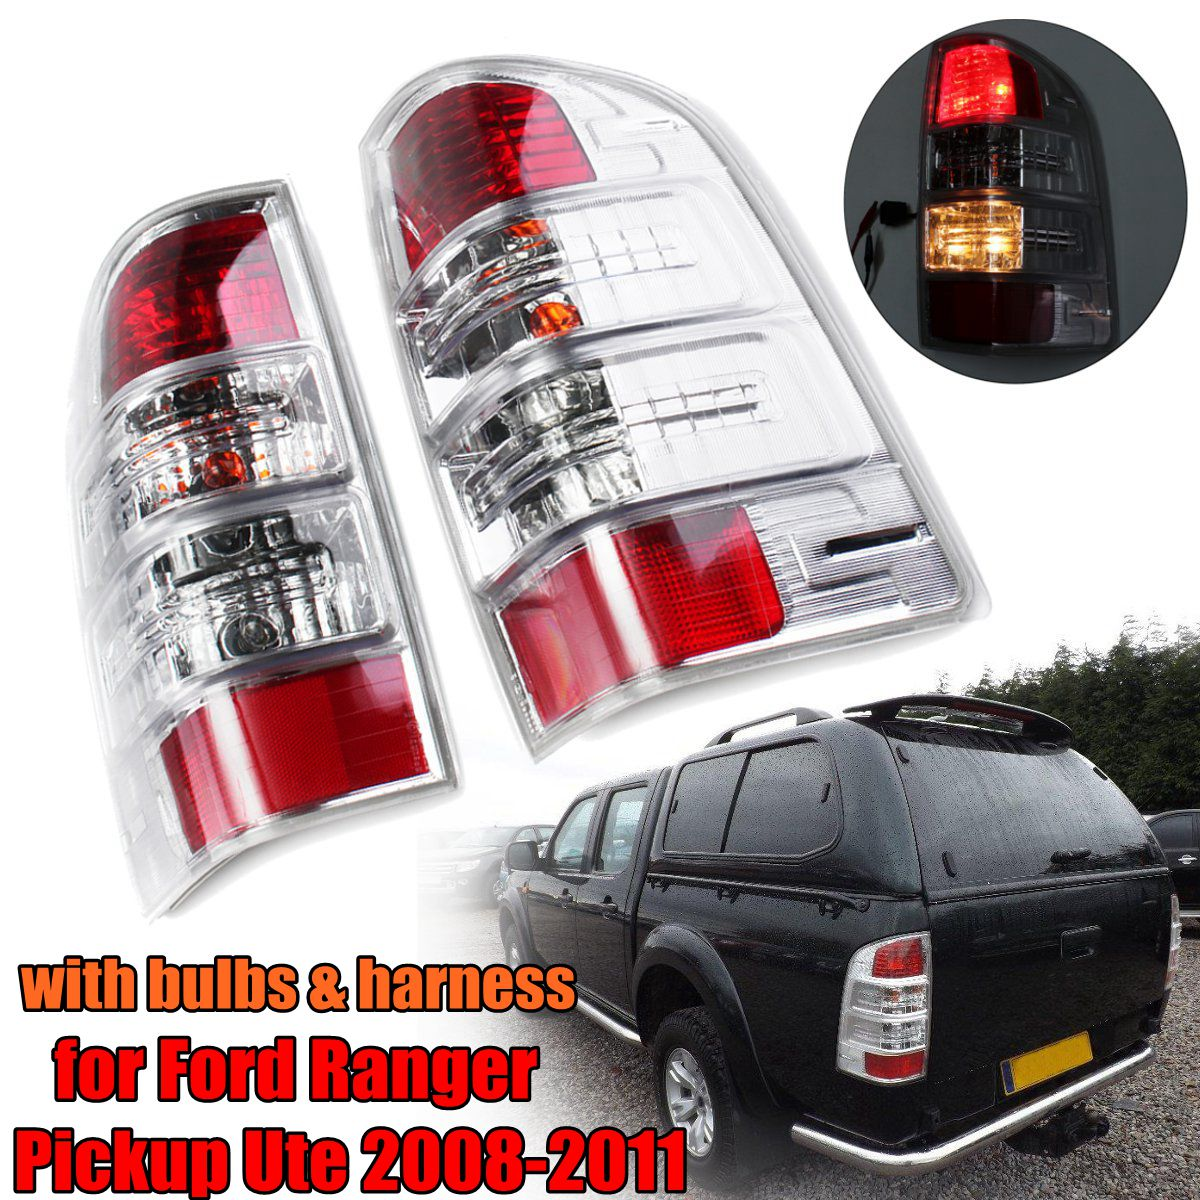 Taillight LED Taillight Left/Right Rear Car Styling Head Lamp Tail Light Lamp w/Bulb Harness for Ford Ranger Pickup Ute 2008-11 1 pc outer rear tail light lamp taillamp taillight rh right side gr1a 51 170 for mazda 6 2005 2010 gg